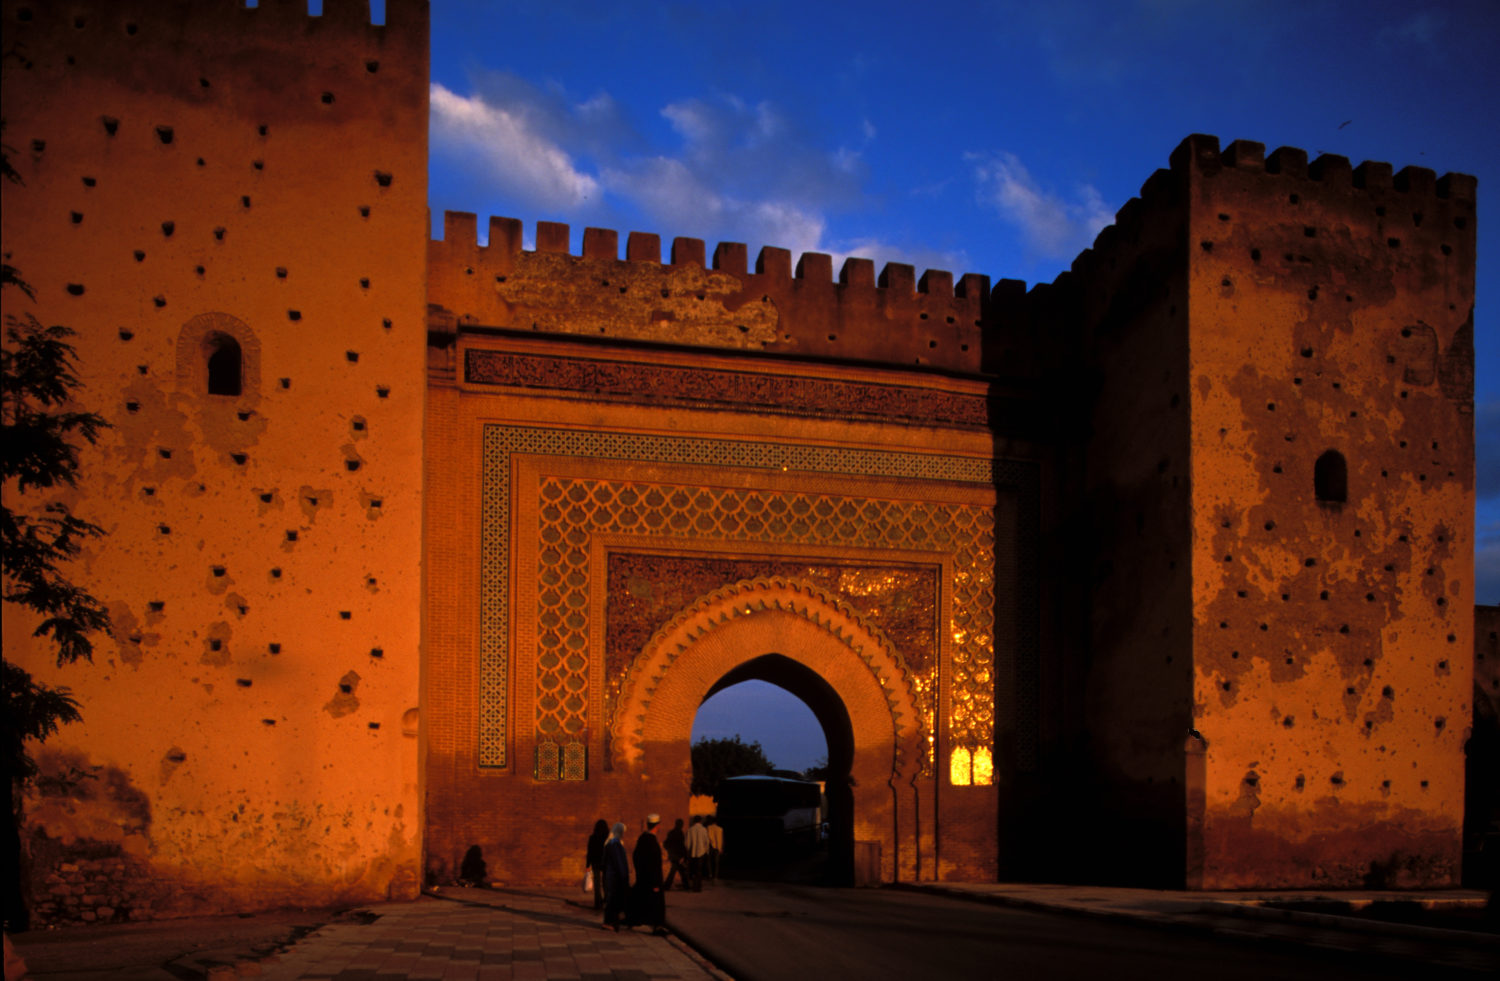 Meknès in the top 10 cities in the world to visit in 2019 according to Lonely Planet